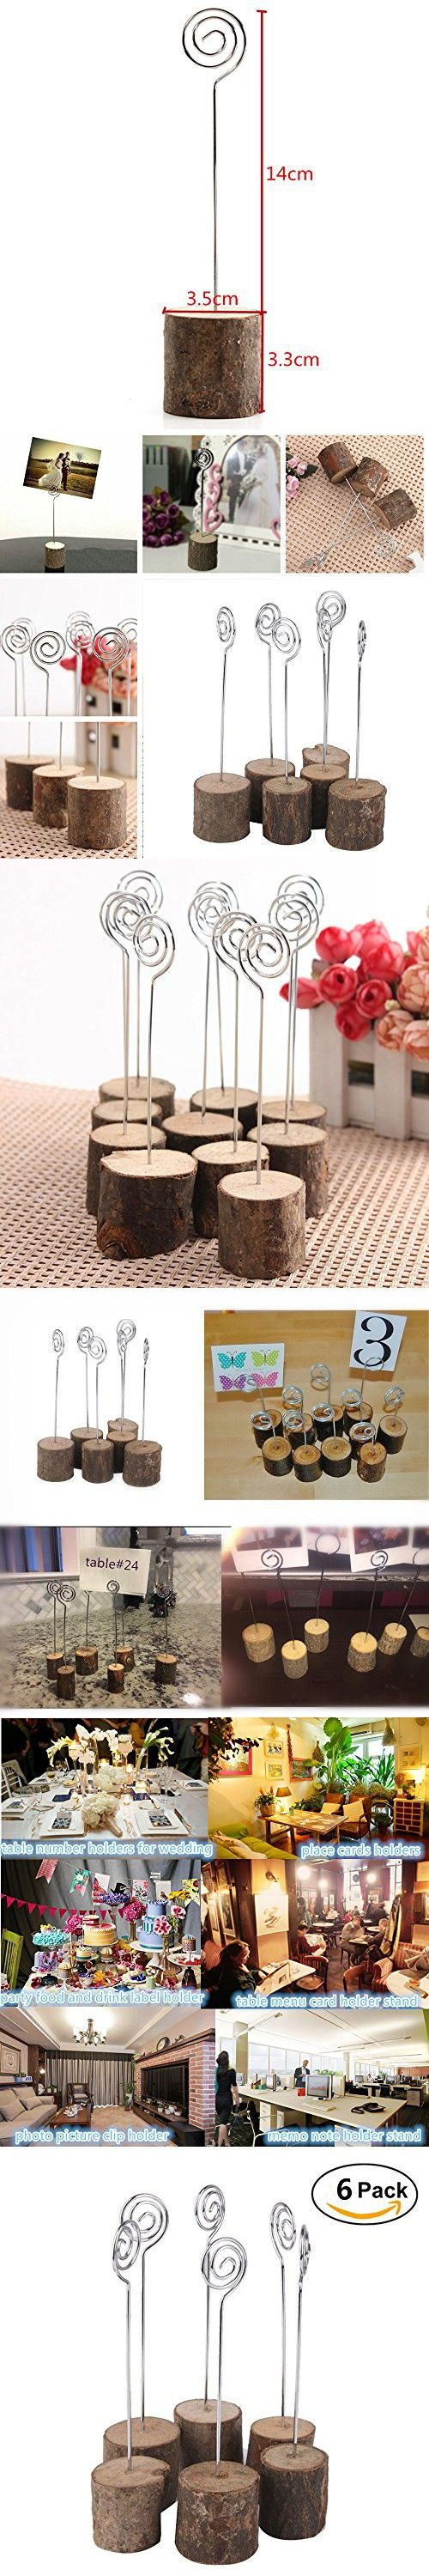 Rustic Real Wooden Wedding Table Holders Wedding Table Number Holders Card Holders Table Decorations Picture Memo Note Photo Clip Holder (6 pack)